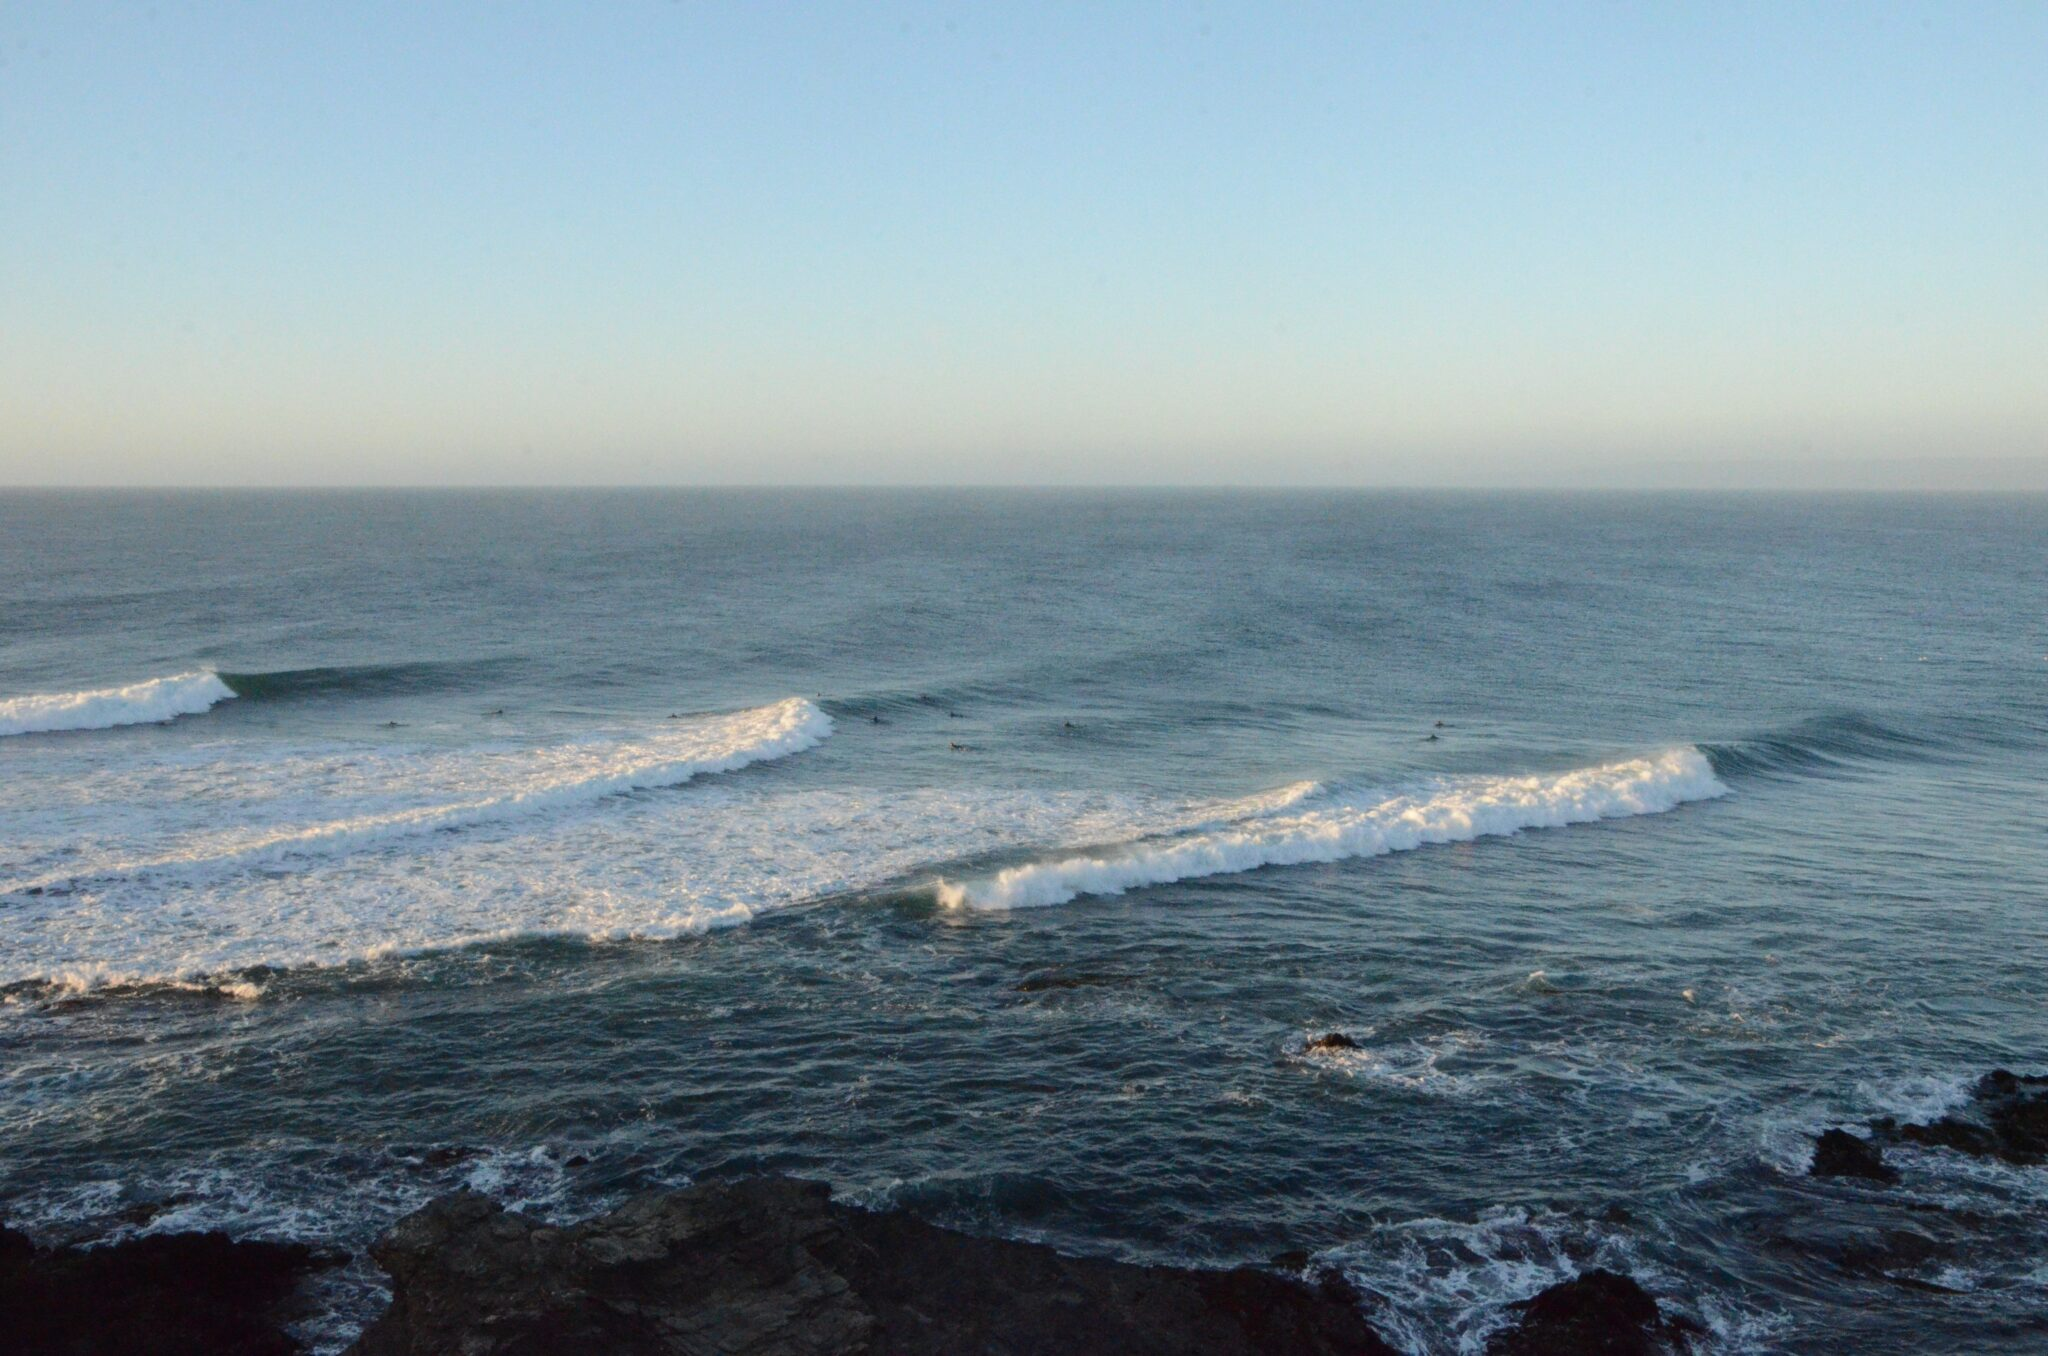 Kite wave destination Chile. Perfect spot for wave kitesurfing.